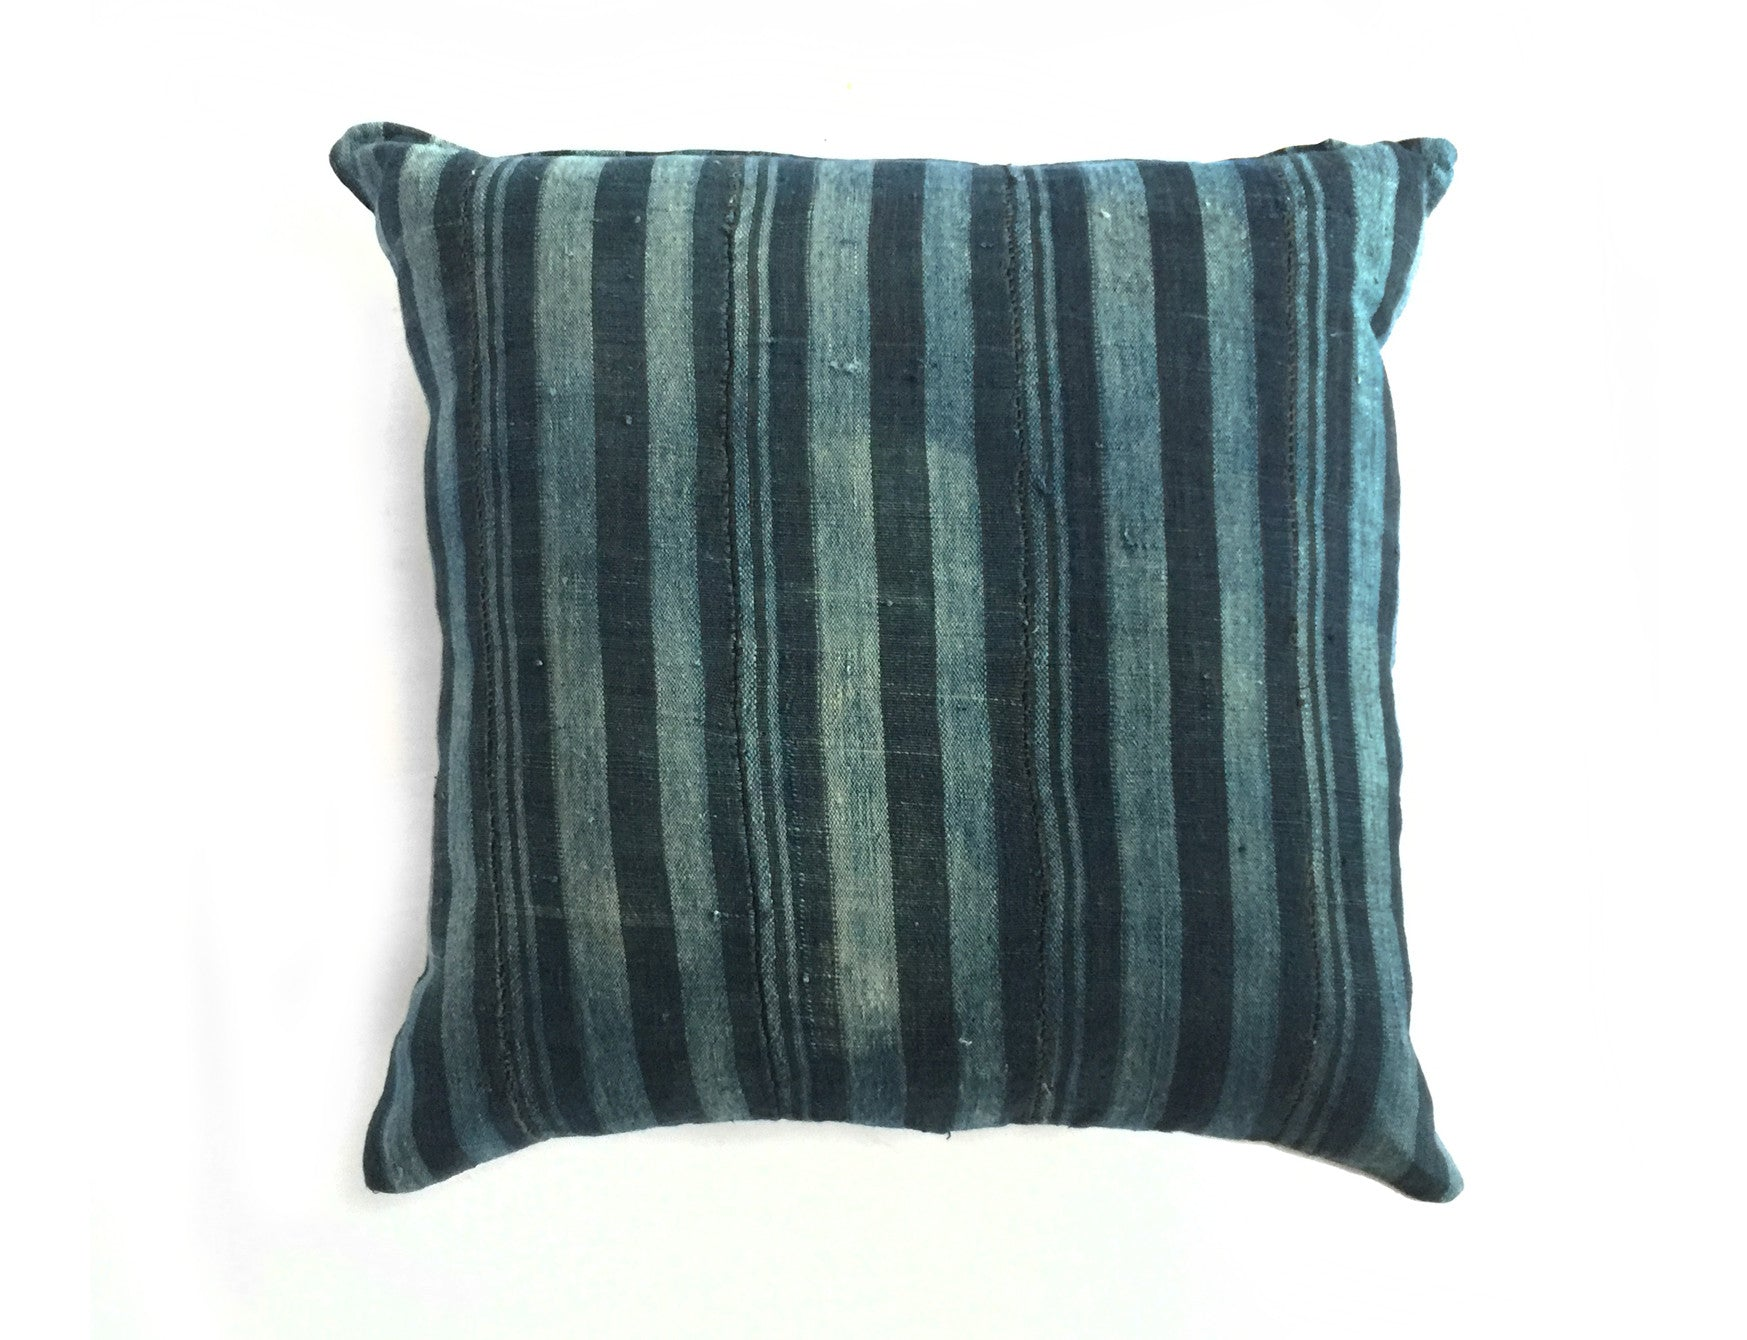 Indigo stripe African pillow